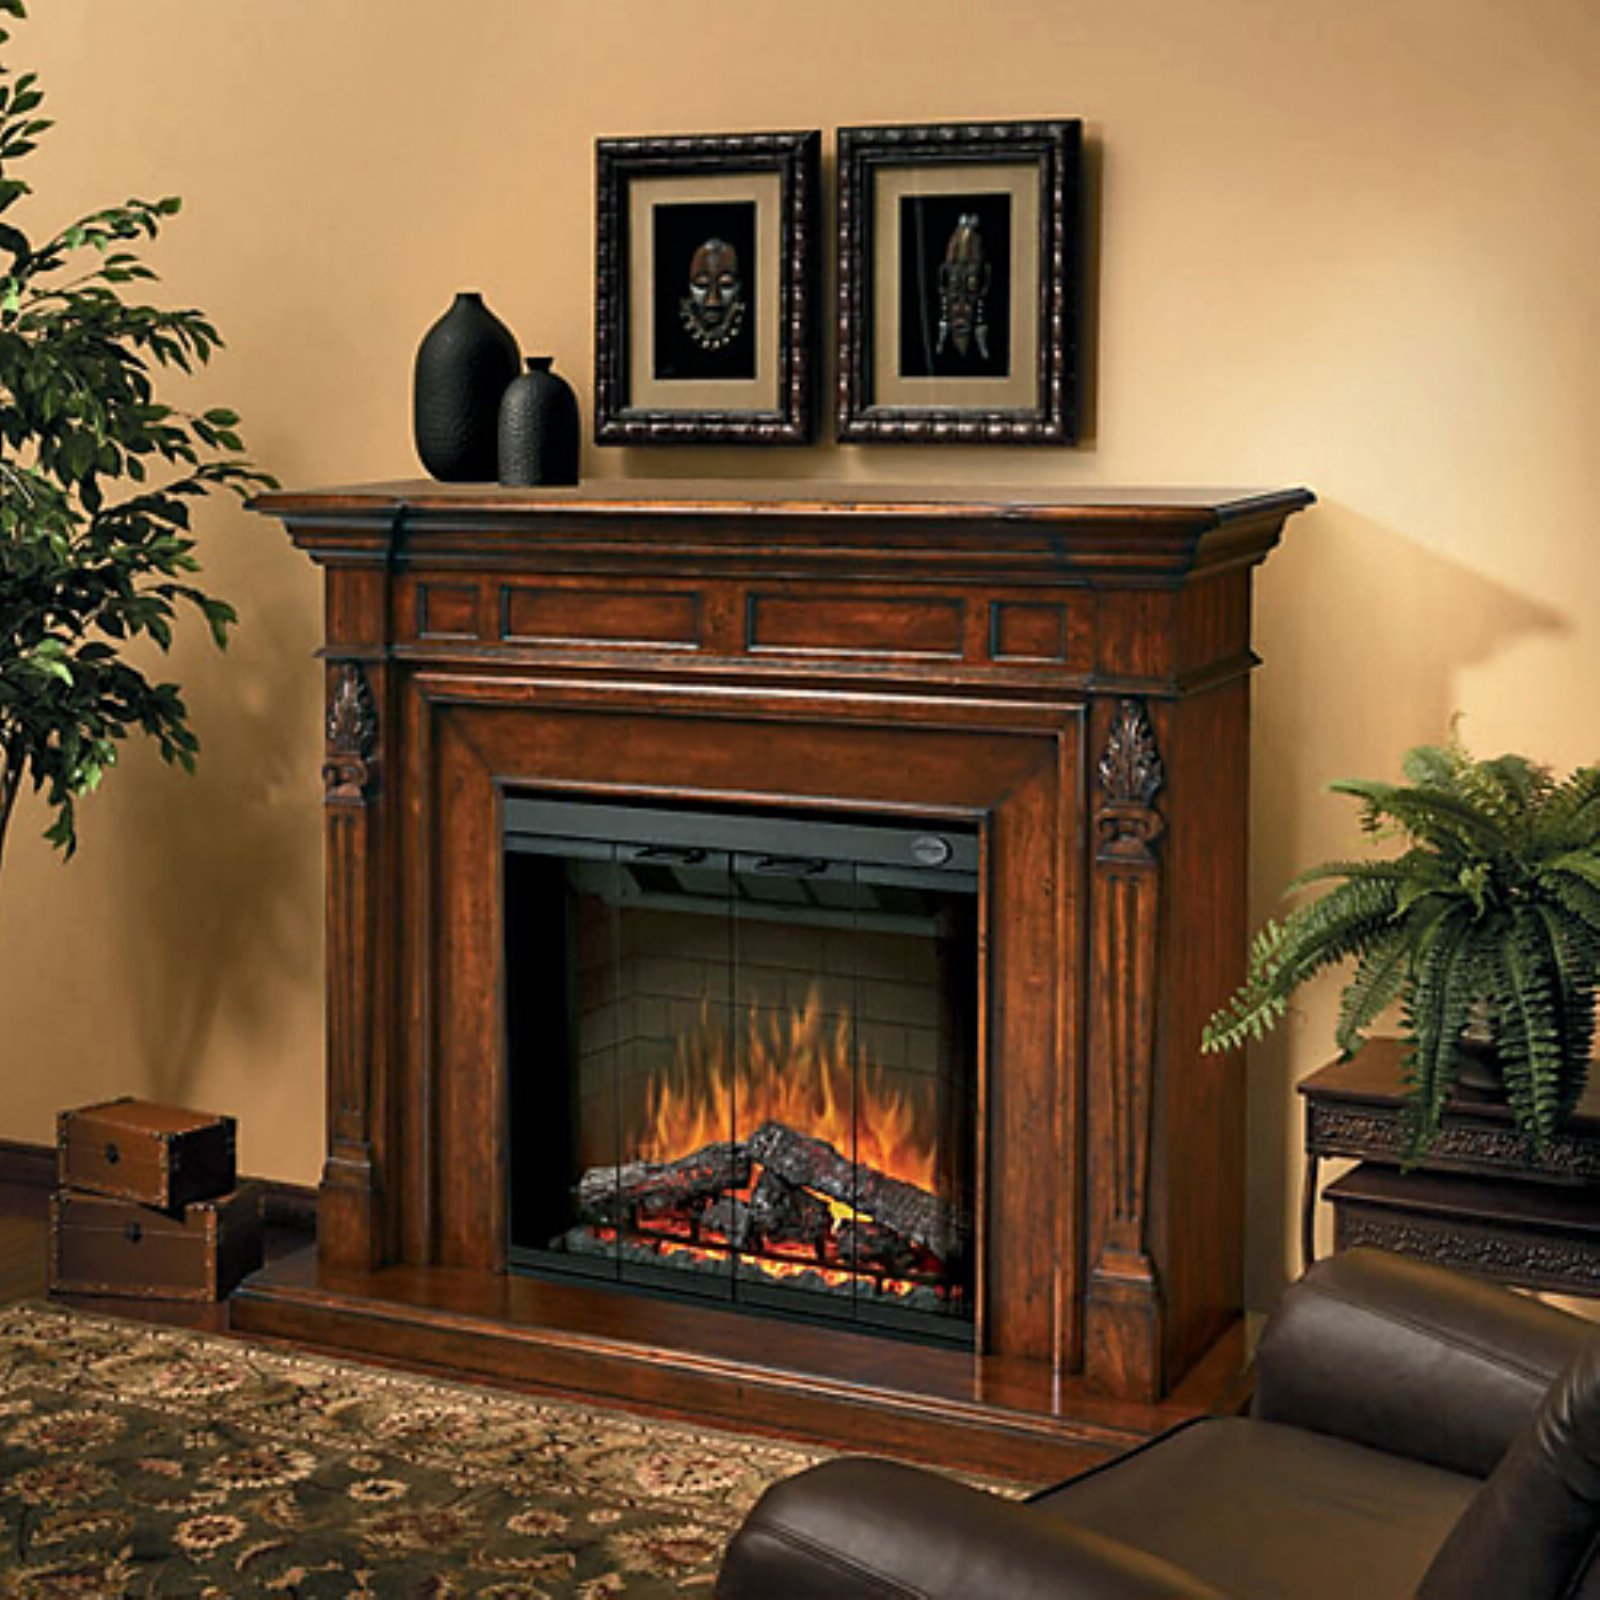 Dimplex Torchiere Mantel Electric Fireplace With Logs, Burnished Walnut